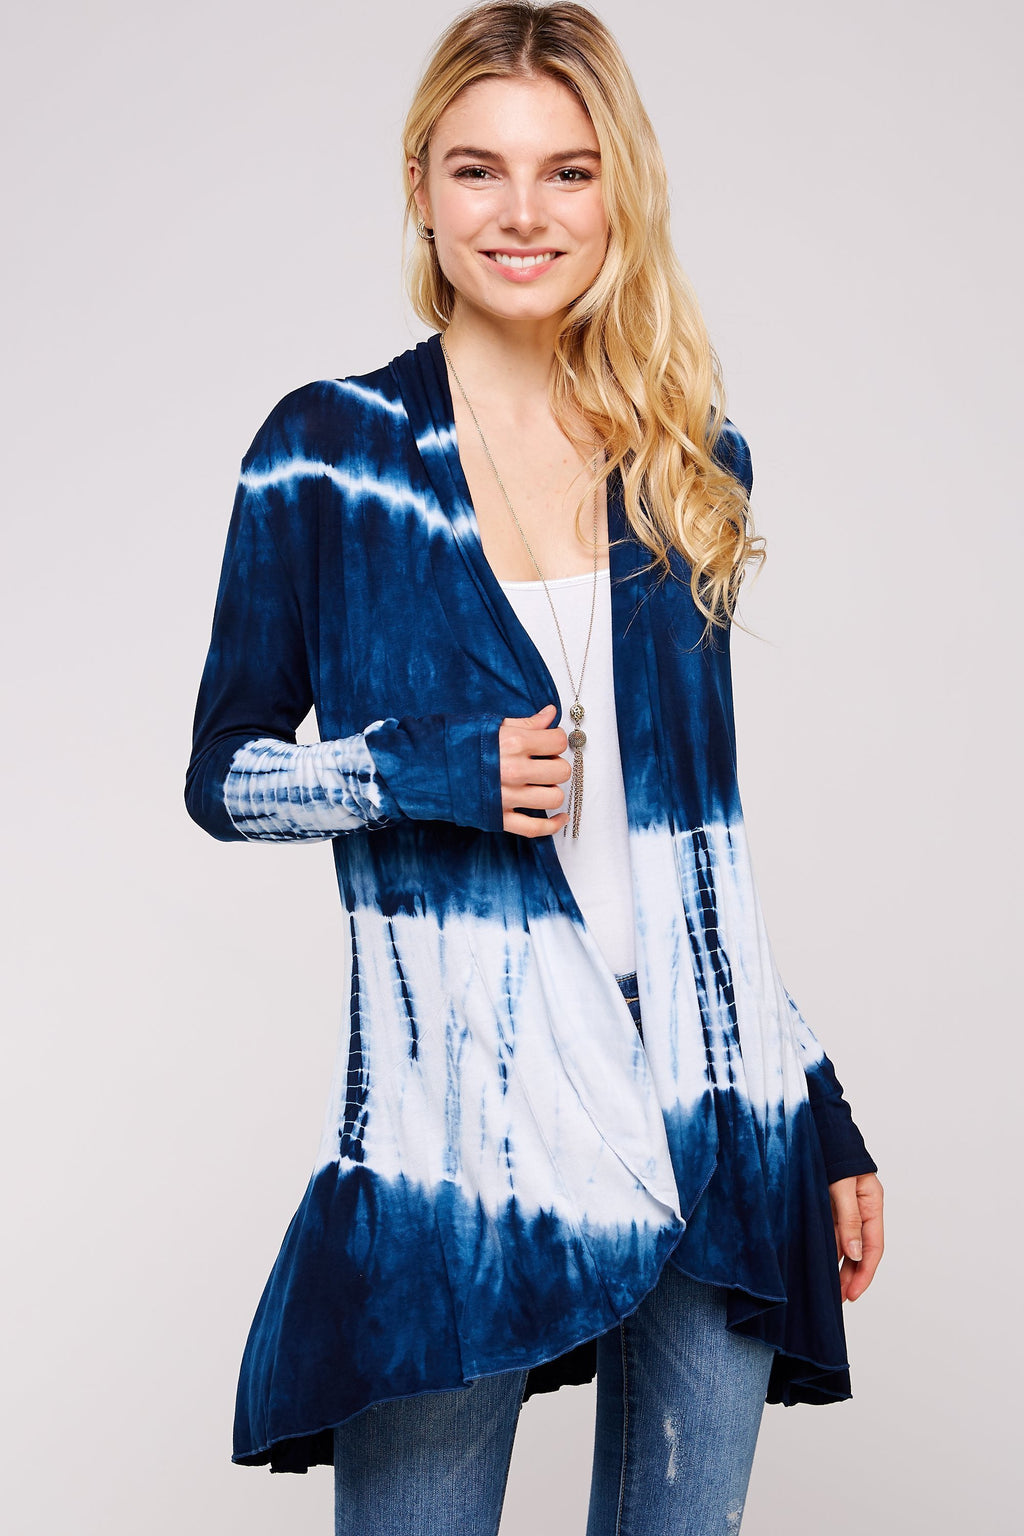 Wholesale Clothing, Online Wholesale Clothing, Women Clothing, Bohemian, Free People, tiedye, specialty wash, wholesale seller, wholesale women clothing shop, gypsy look, USA made, URBAN X APPAREL-TIE DYE-UCR3004D, fashiontrend2019